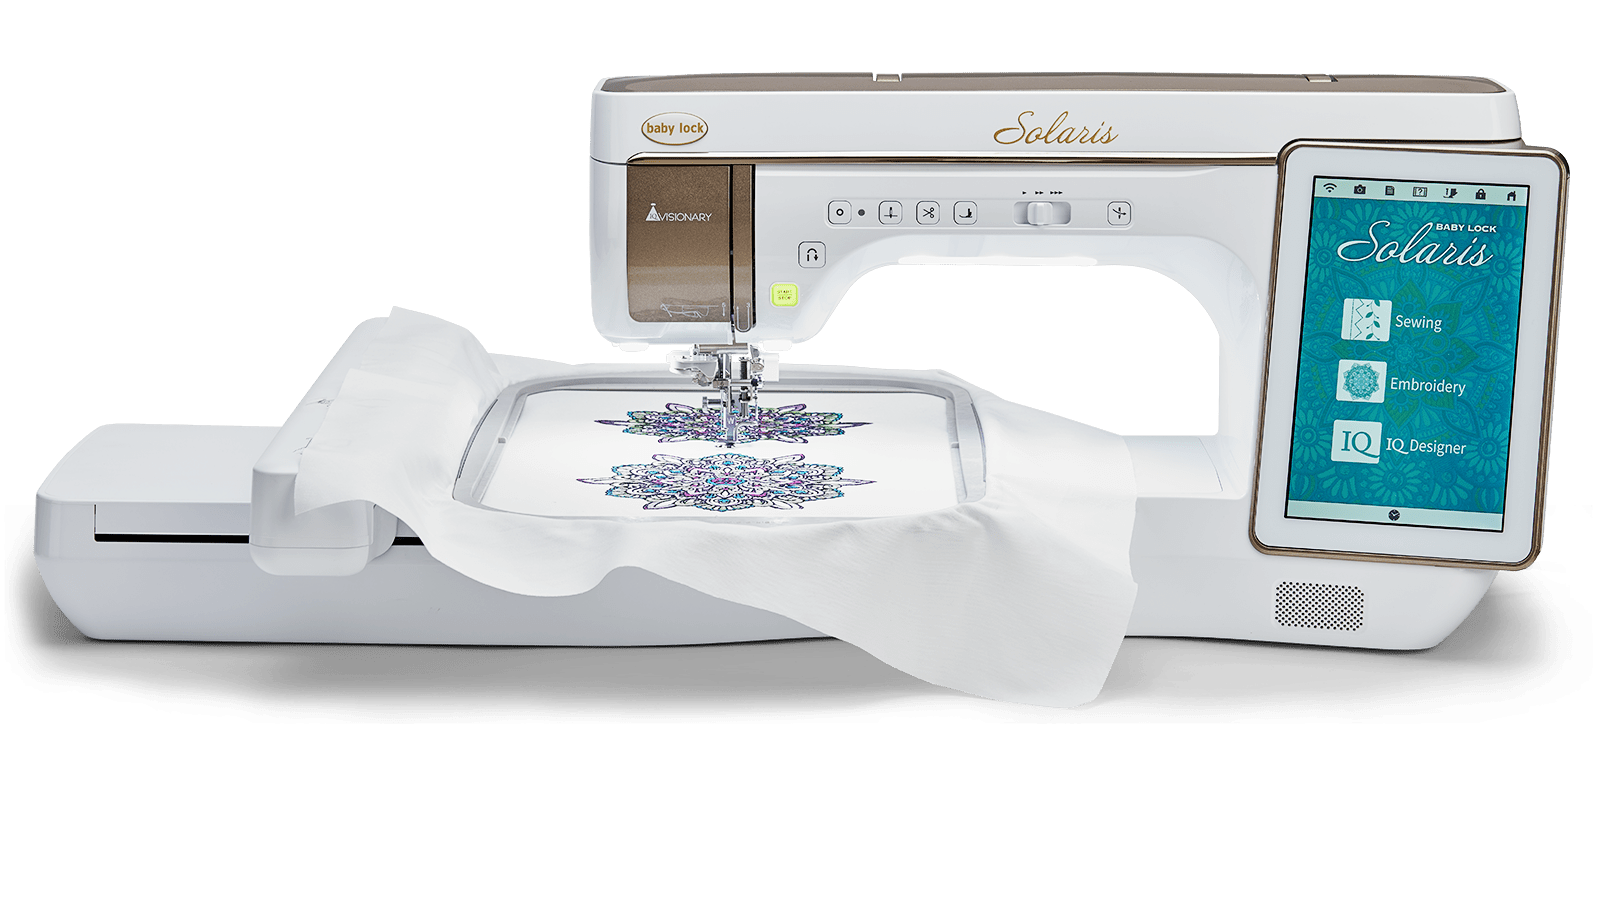 Baby Lock Solaris embroidery machine